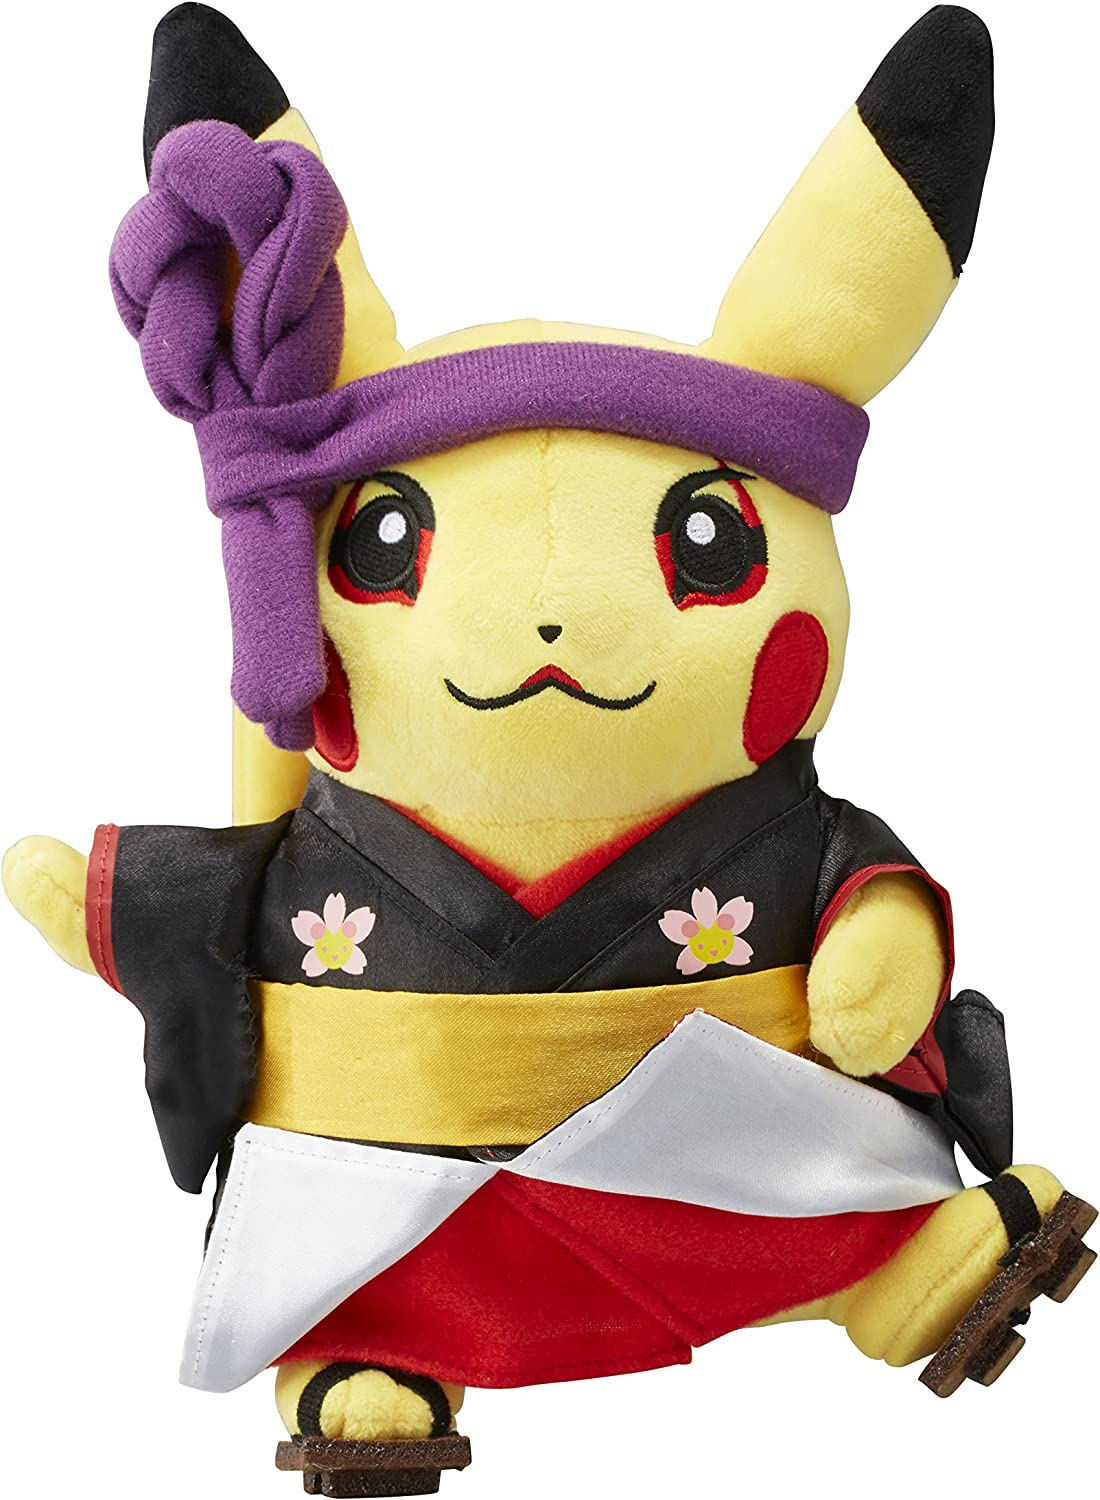 Pokemon Center Original stuffed Japan Pikachu